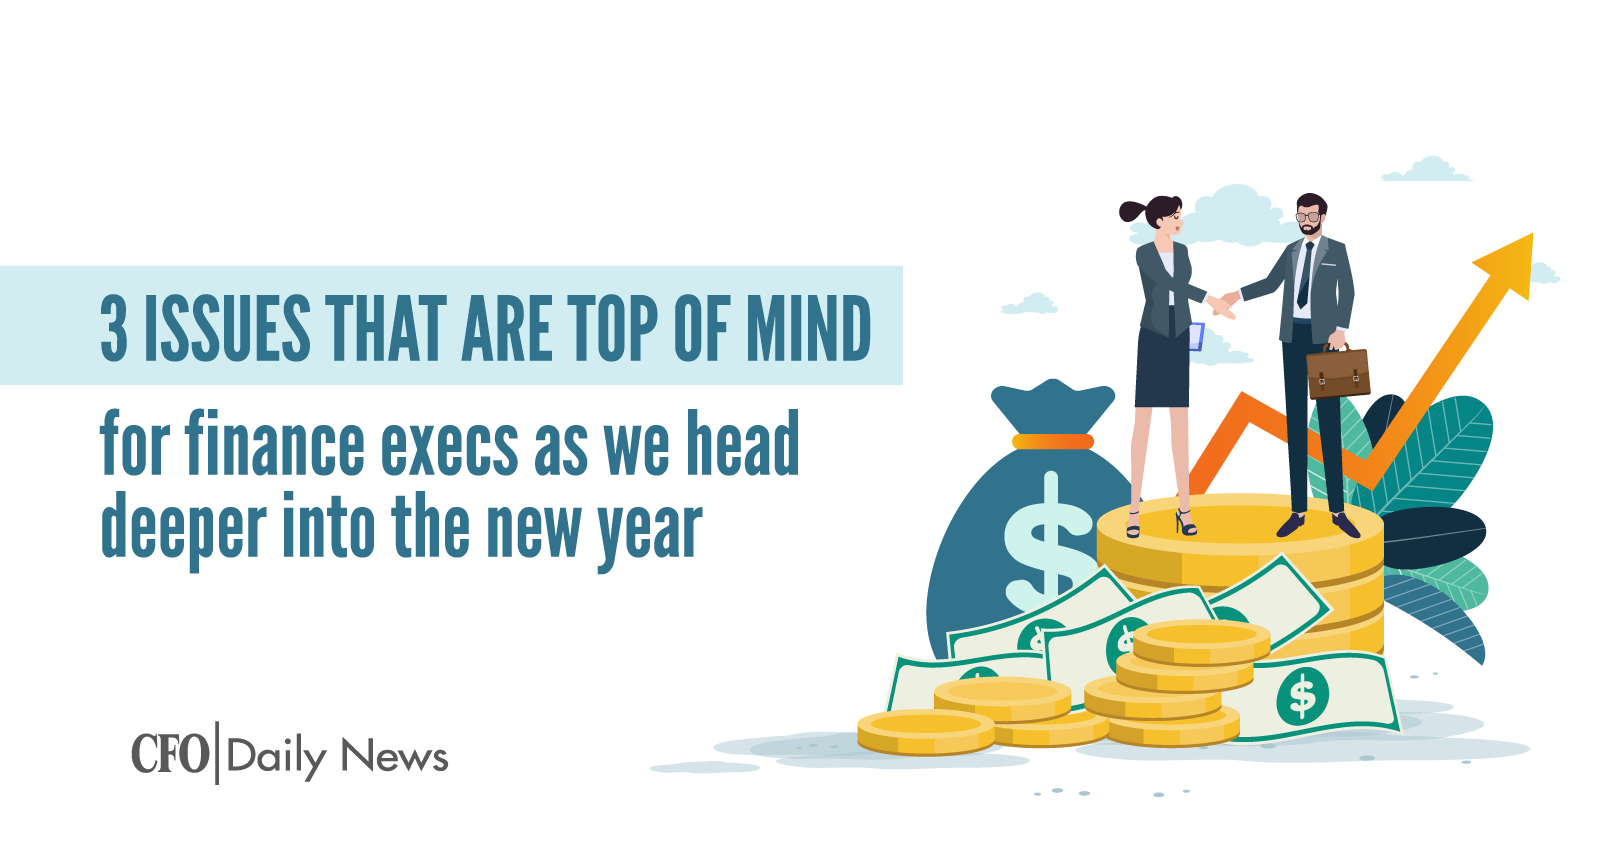 3 Issues That Are Top Of Mind For Finance Execs As We Head Deeper Into The New Year